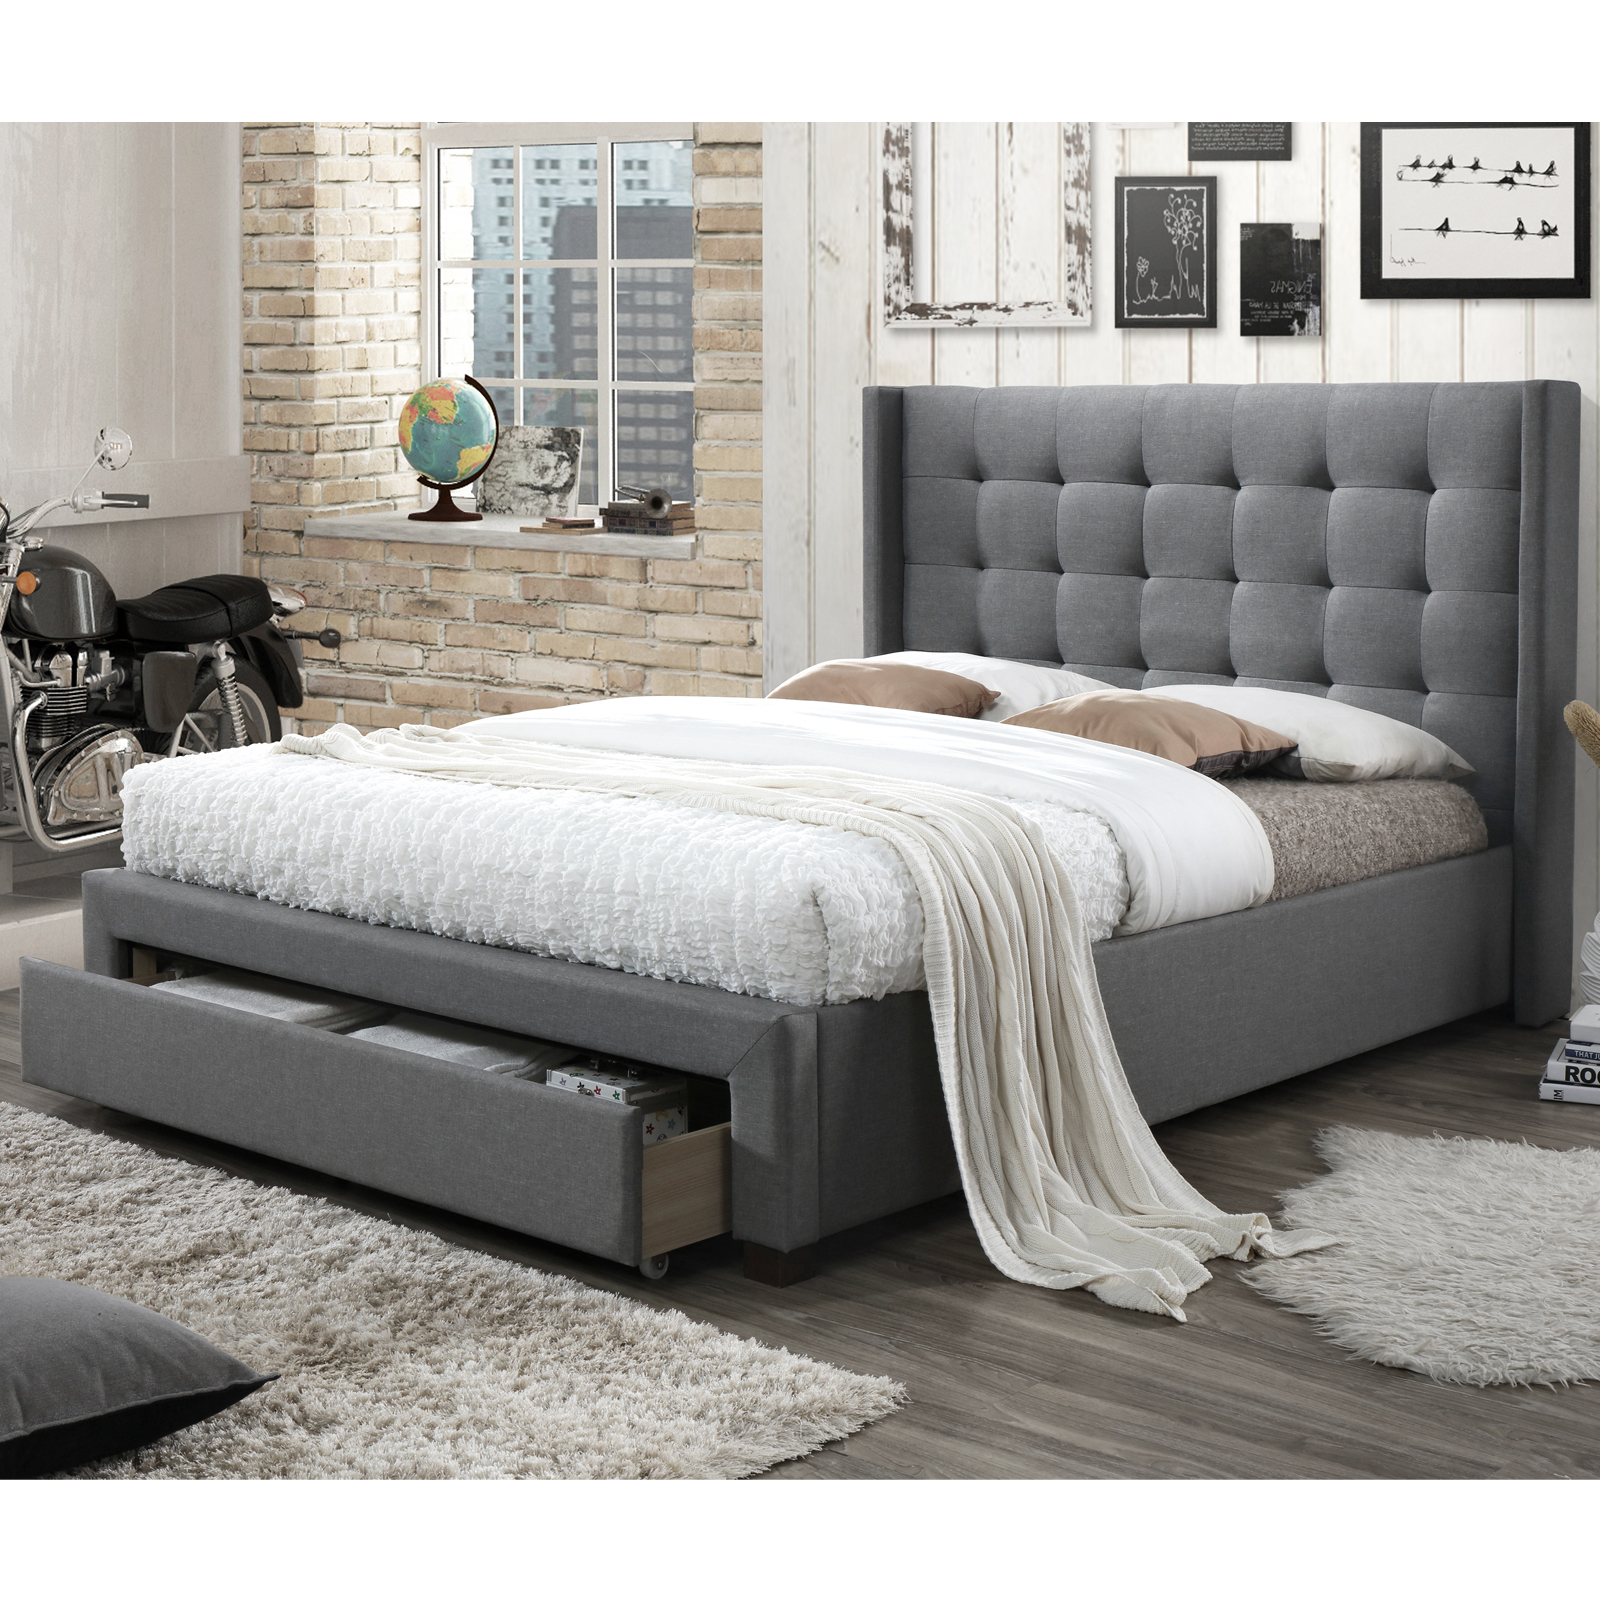 New Atlanta Queen Bed Spring Latex Pillowtop Mattress Vic Furniture Beds Ebay